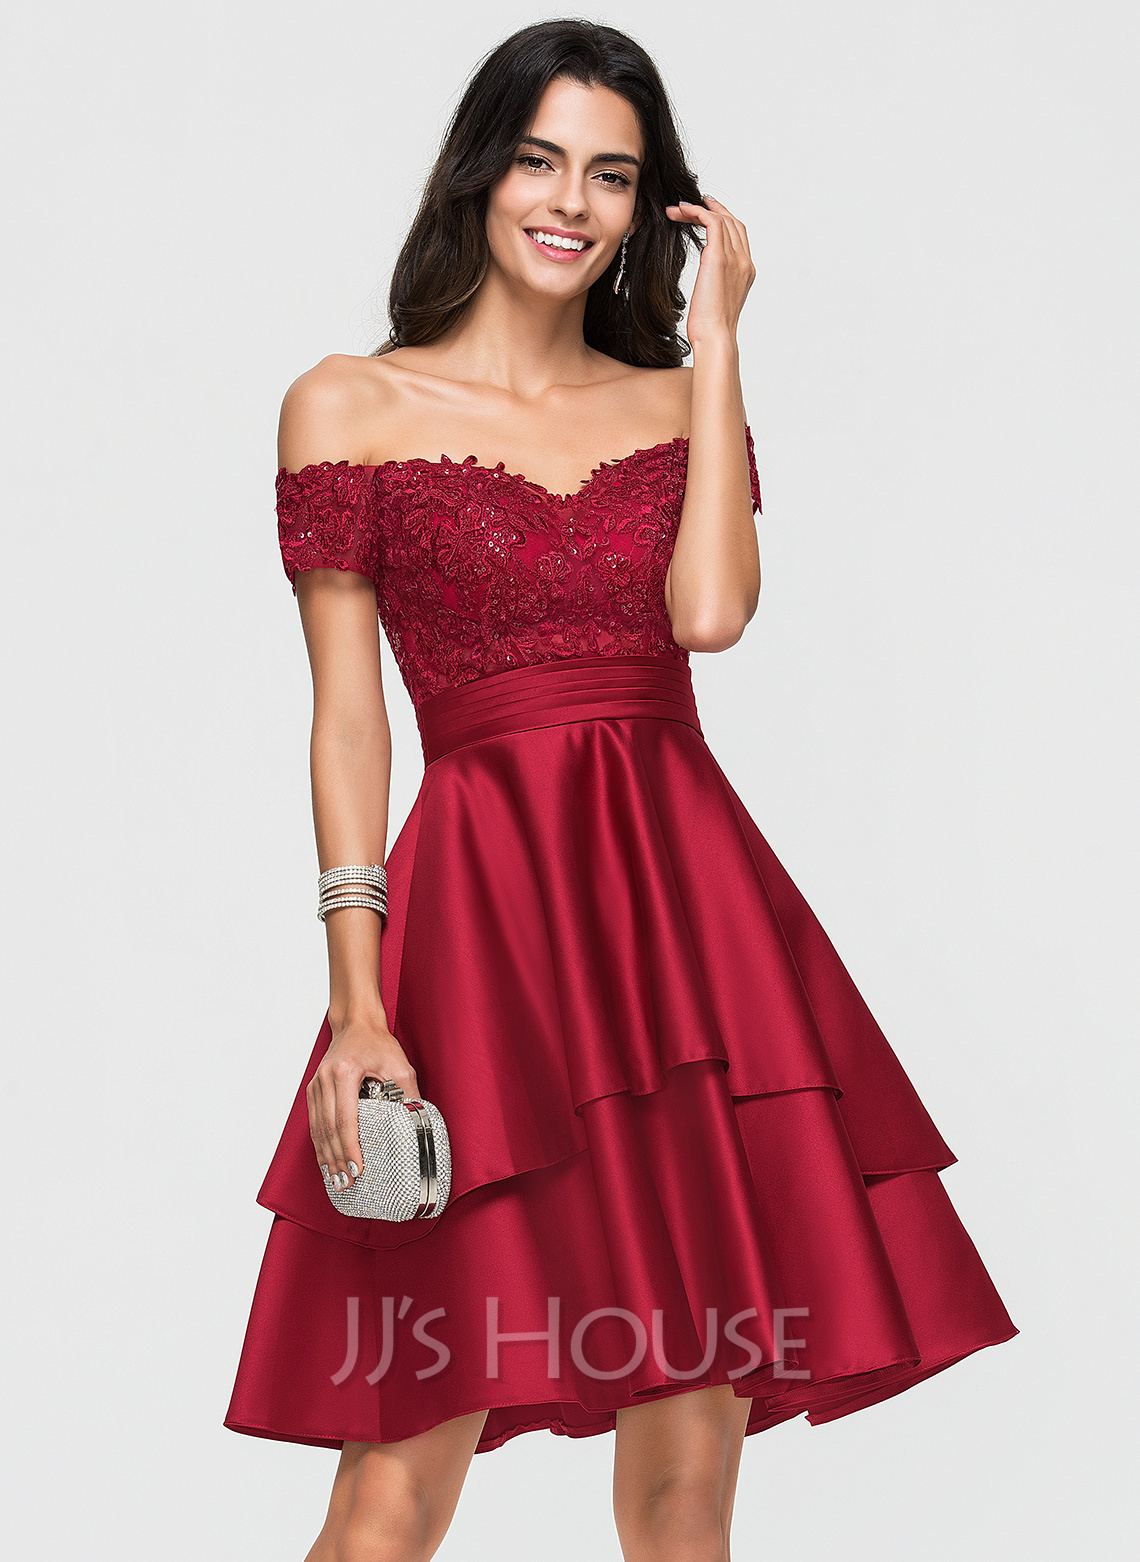 530c1b6008e A-Line Princess Off-the-Shoulder Knee-Length Satin Homecoming Dress.  Loading zoom